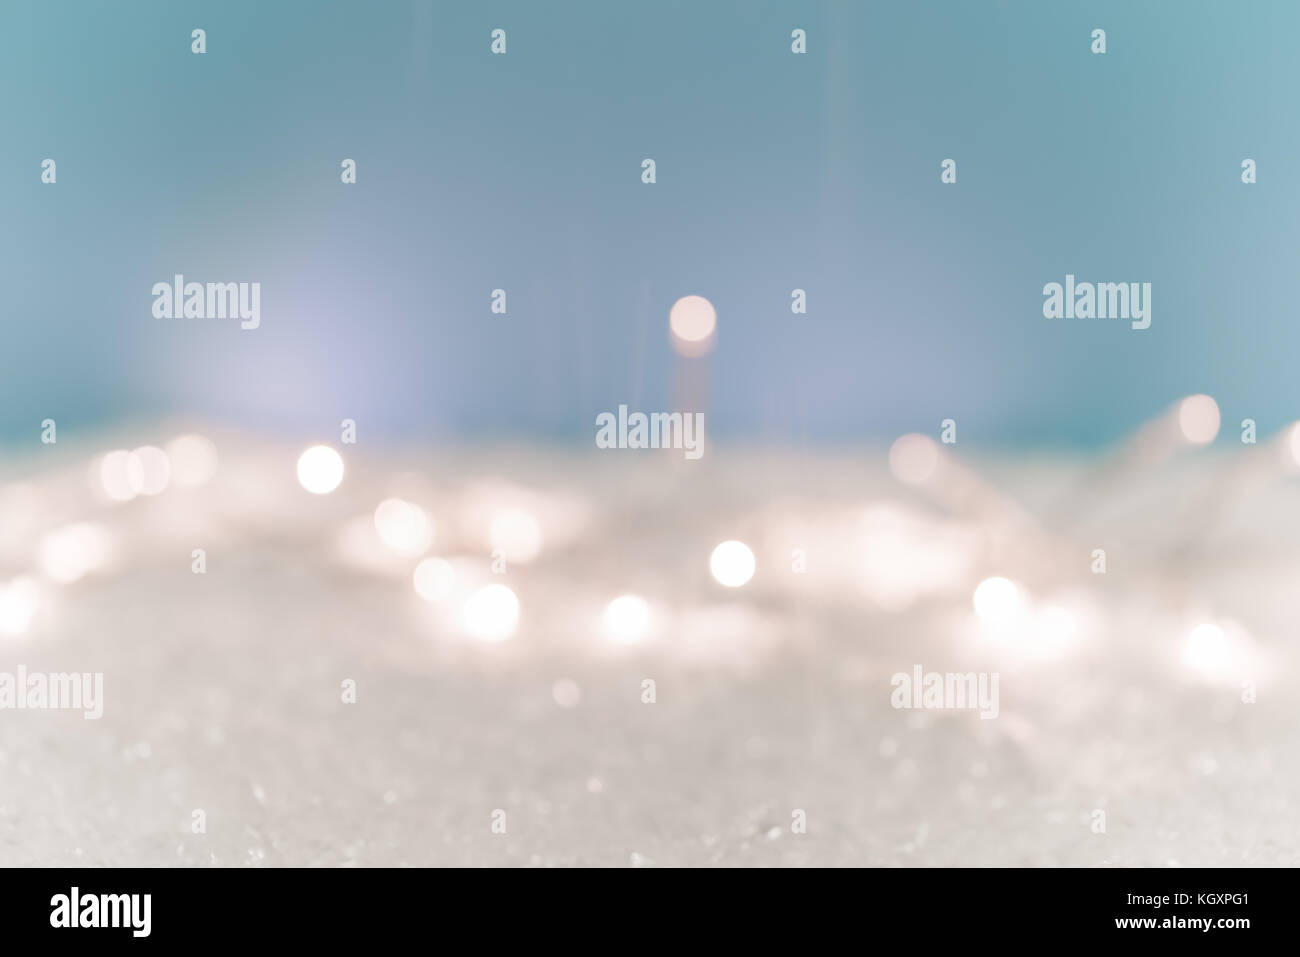 Christmas Background Snow lights Stock Photo